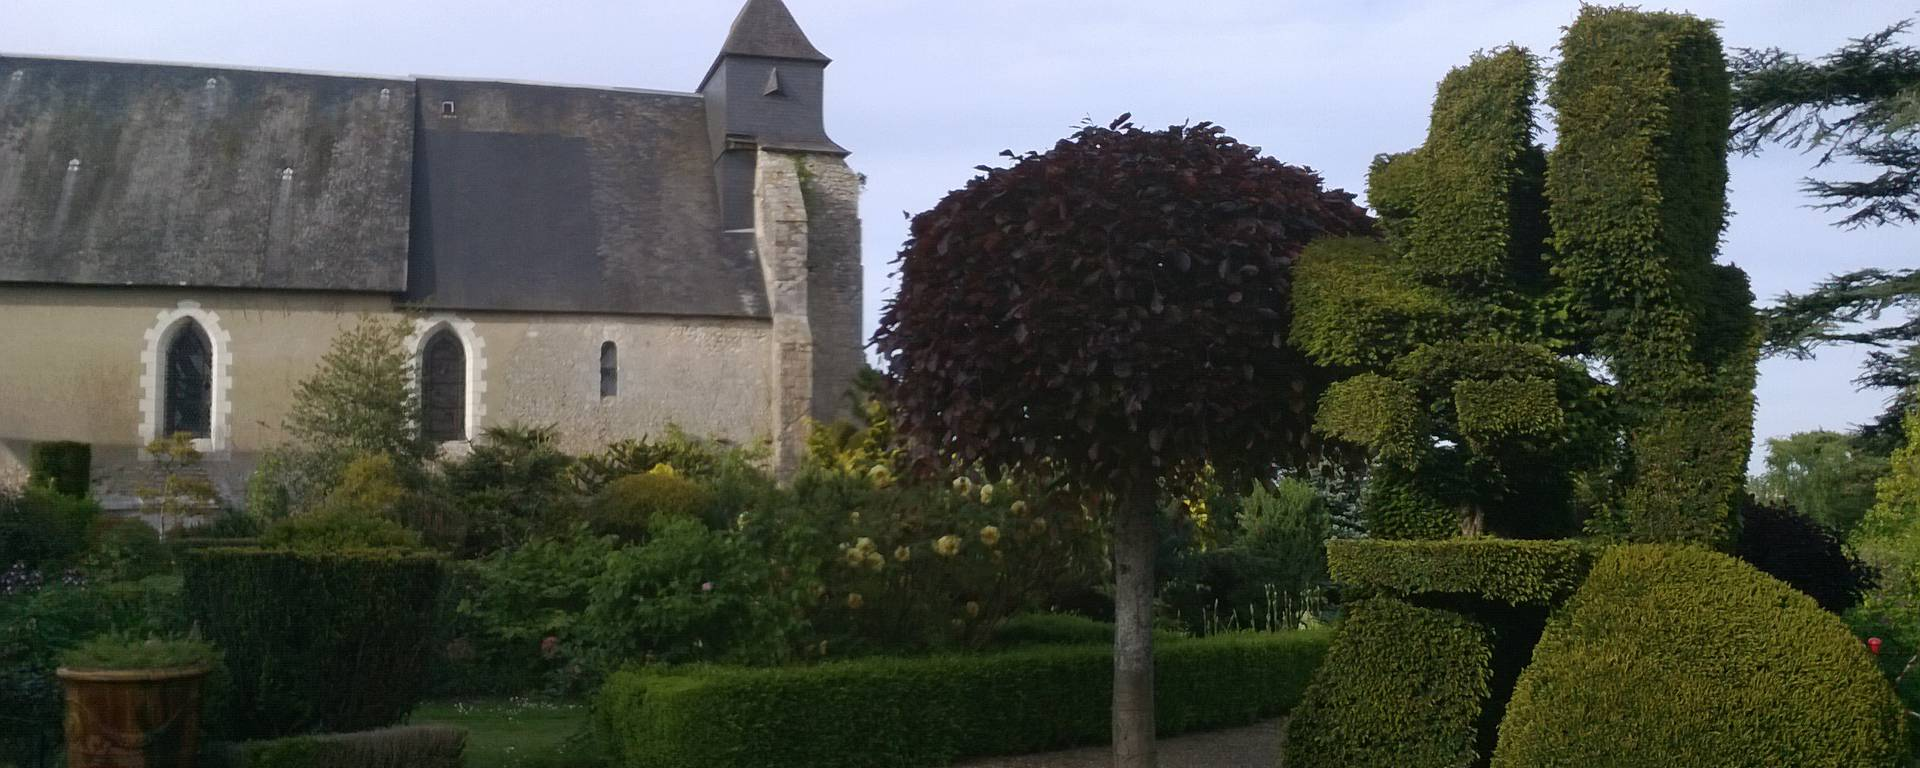 The Orchaise priory.